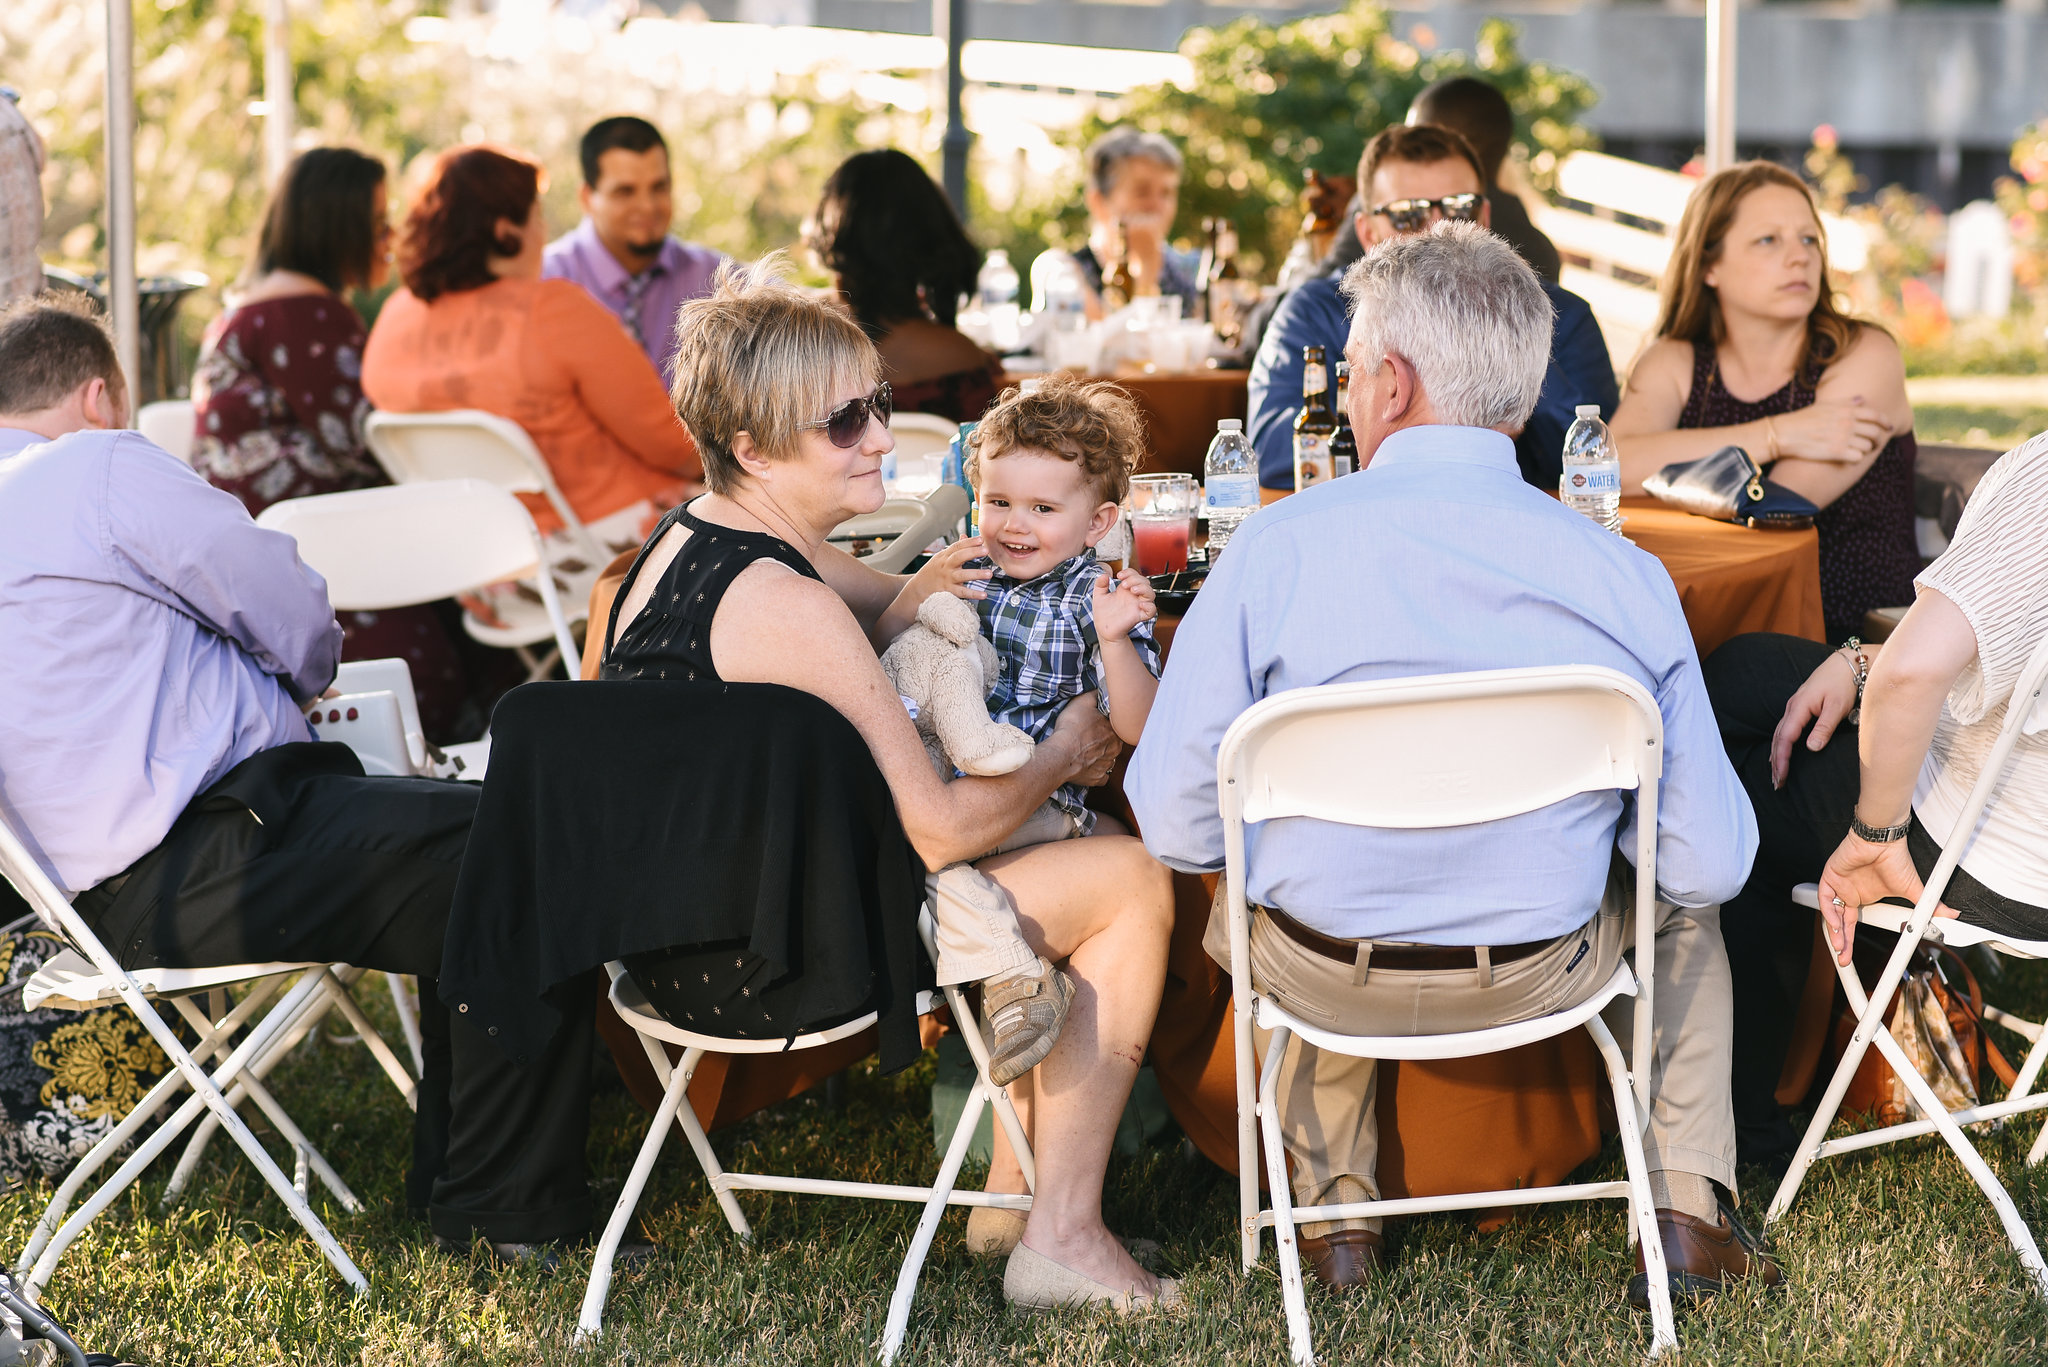 Baltimore, Canton, Modern, Outdoor Reception, Maryland Wedding Photographer, Romantic, Classic, Boston Street Pier Park, Wedding guests at tables during reception